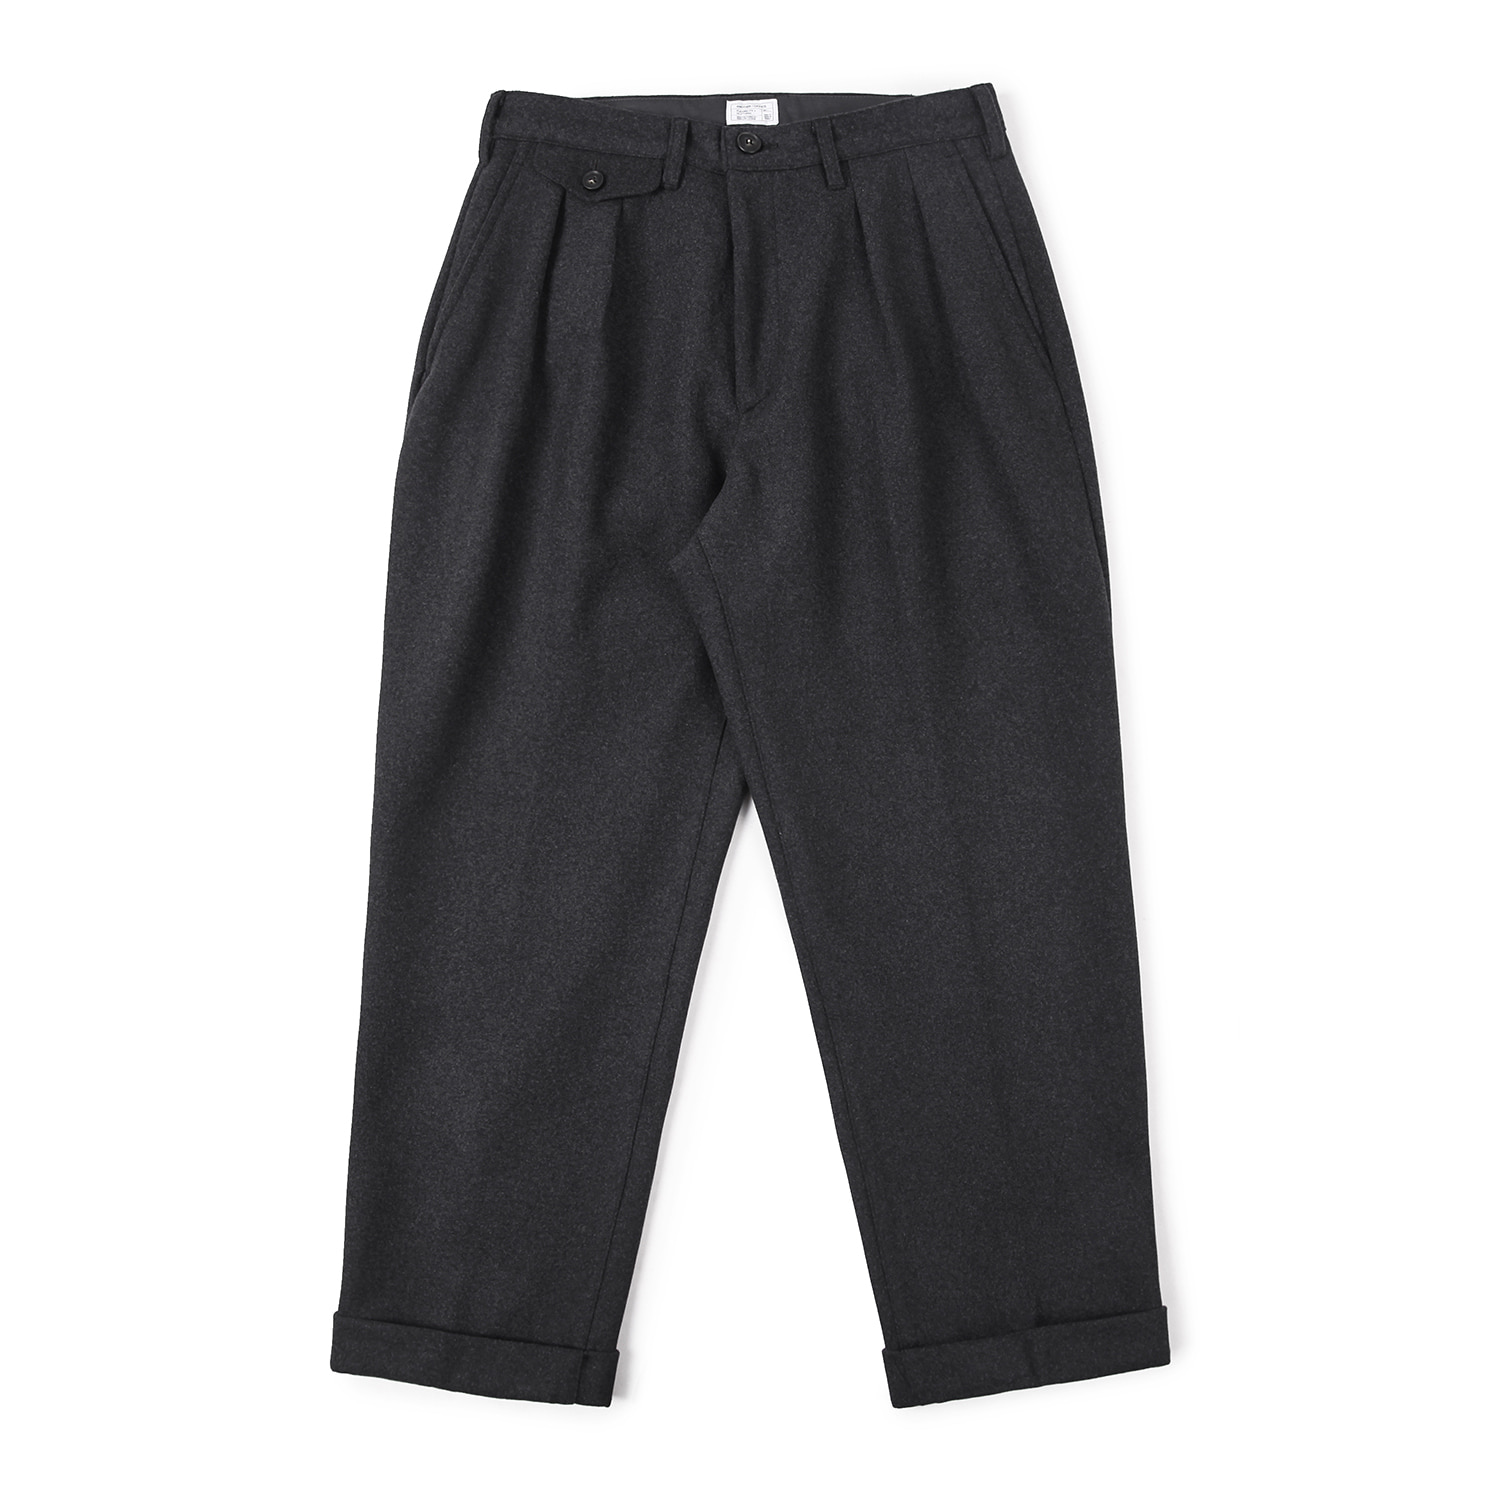 25% OFF_Balance Wool Turn-up Pants (Charcoal)